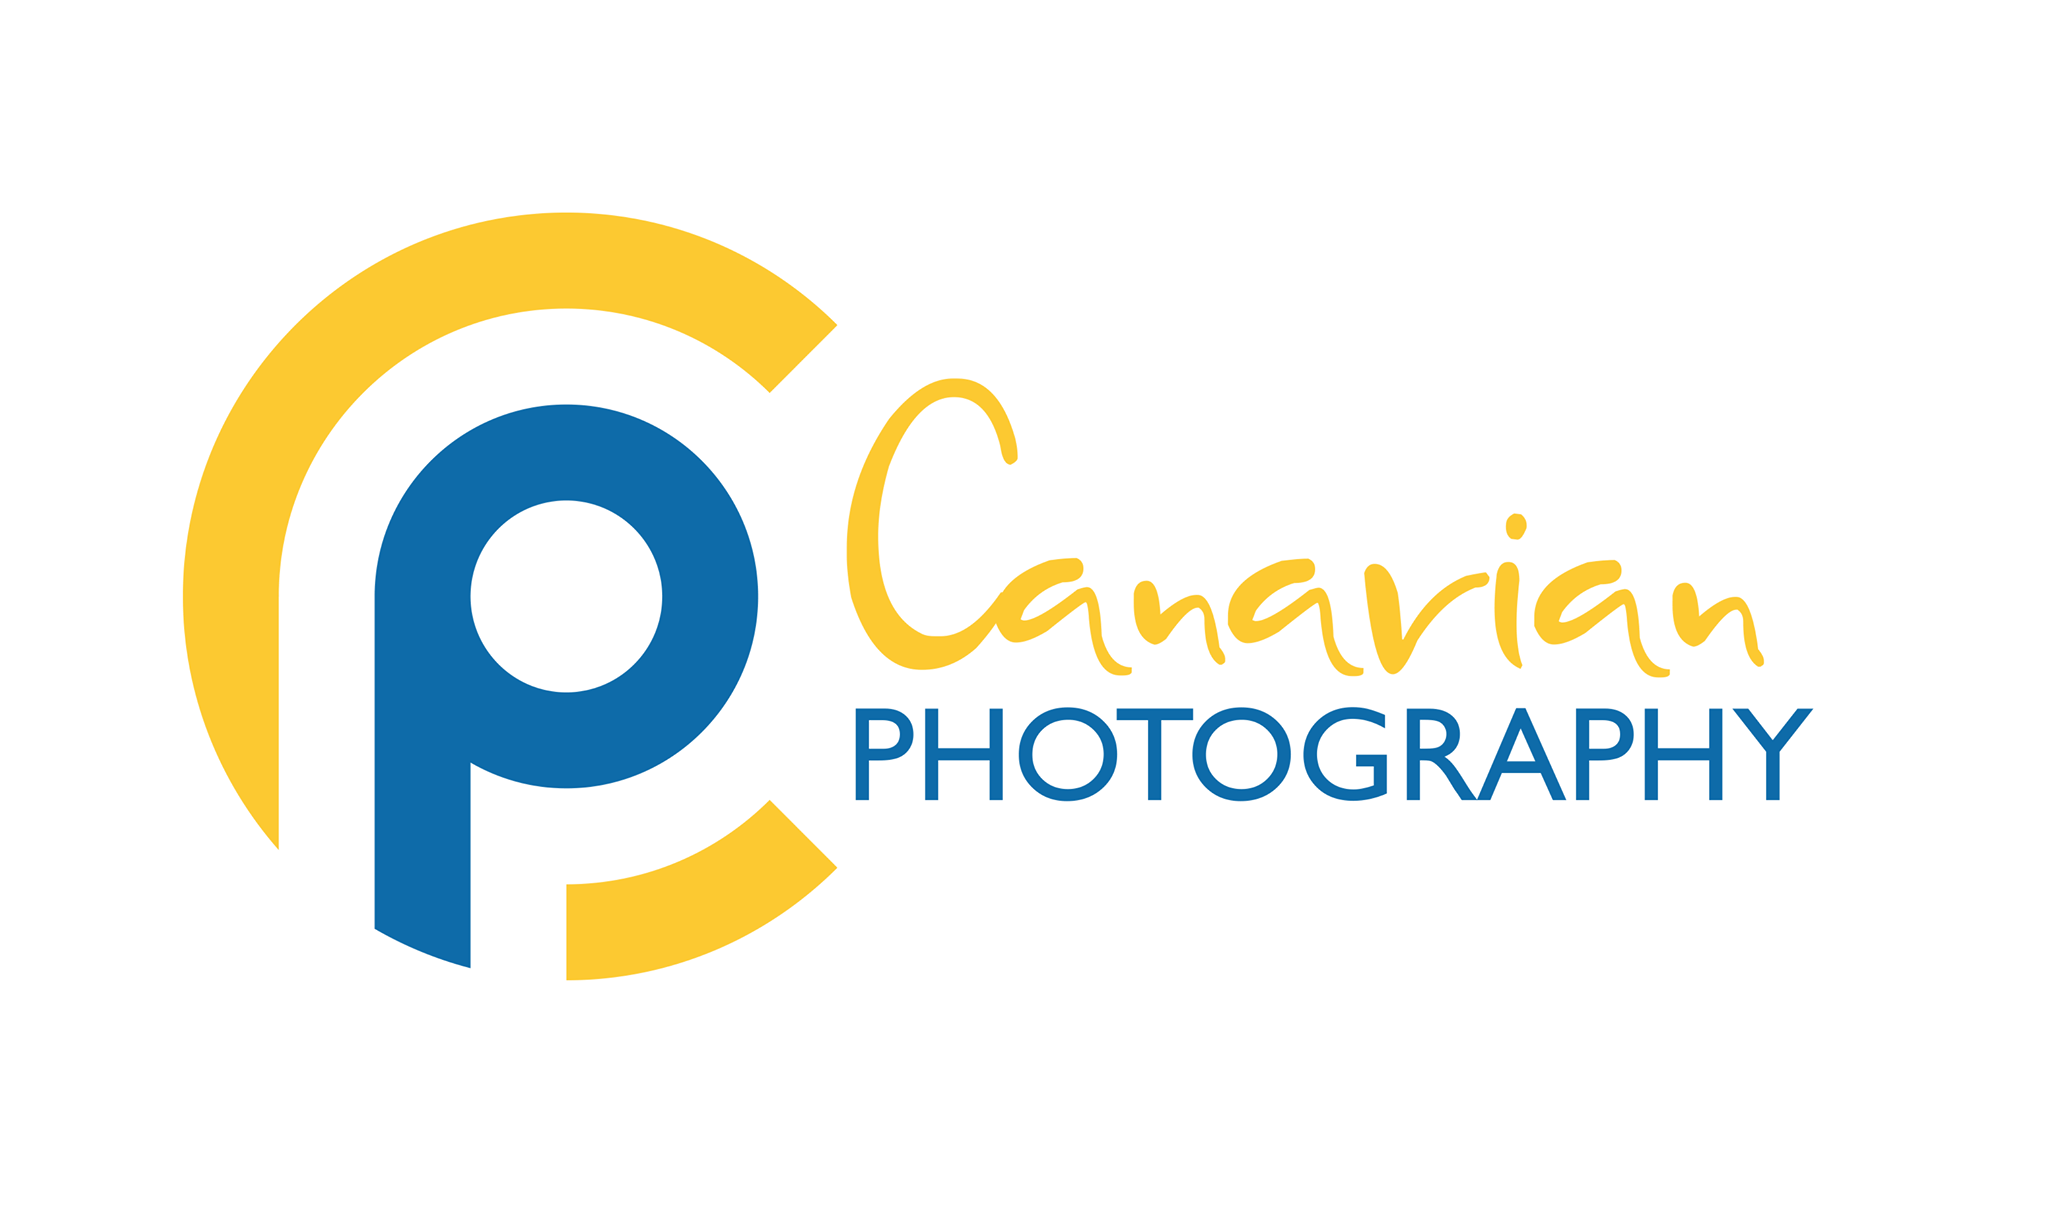 Canarian Photography